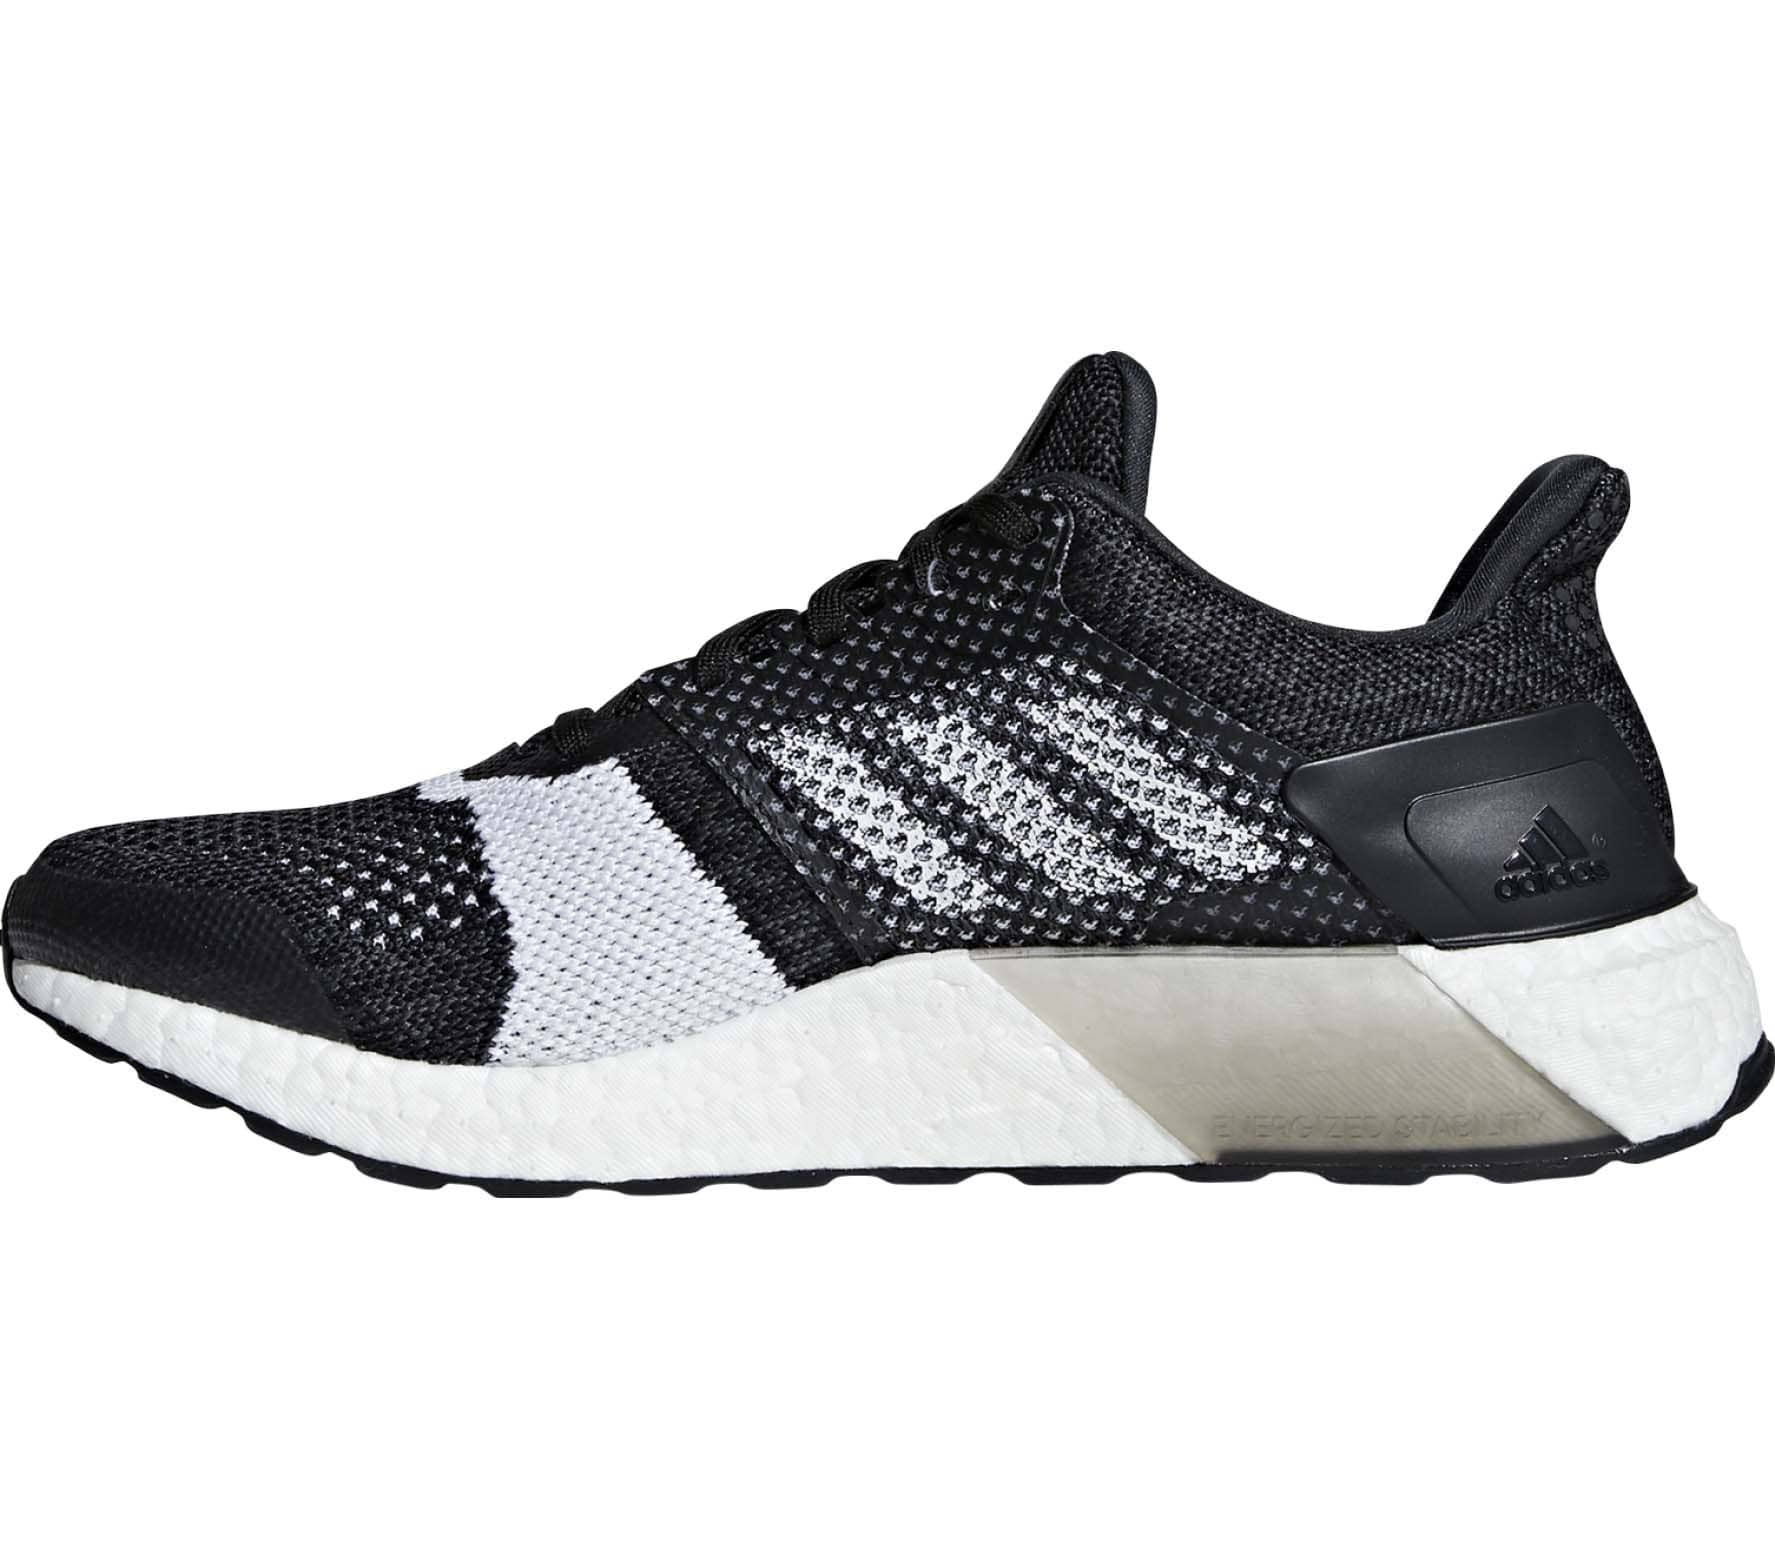 Adidas Ultra Boost ST Hommes chaussure de course (pourpre